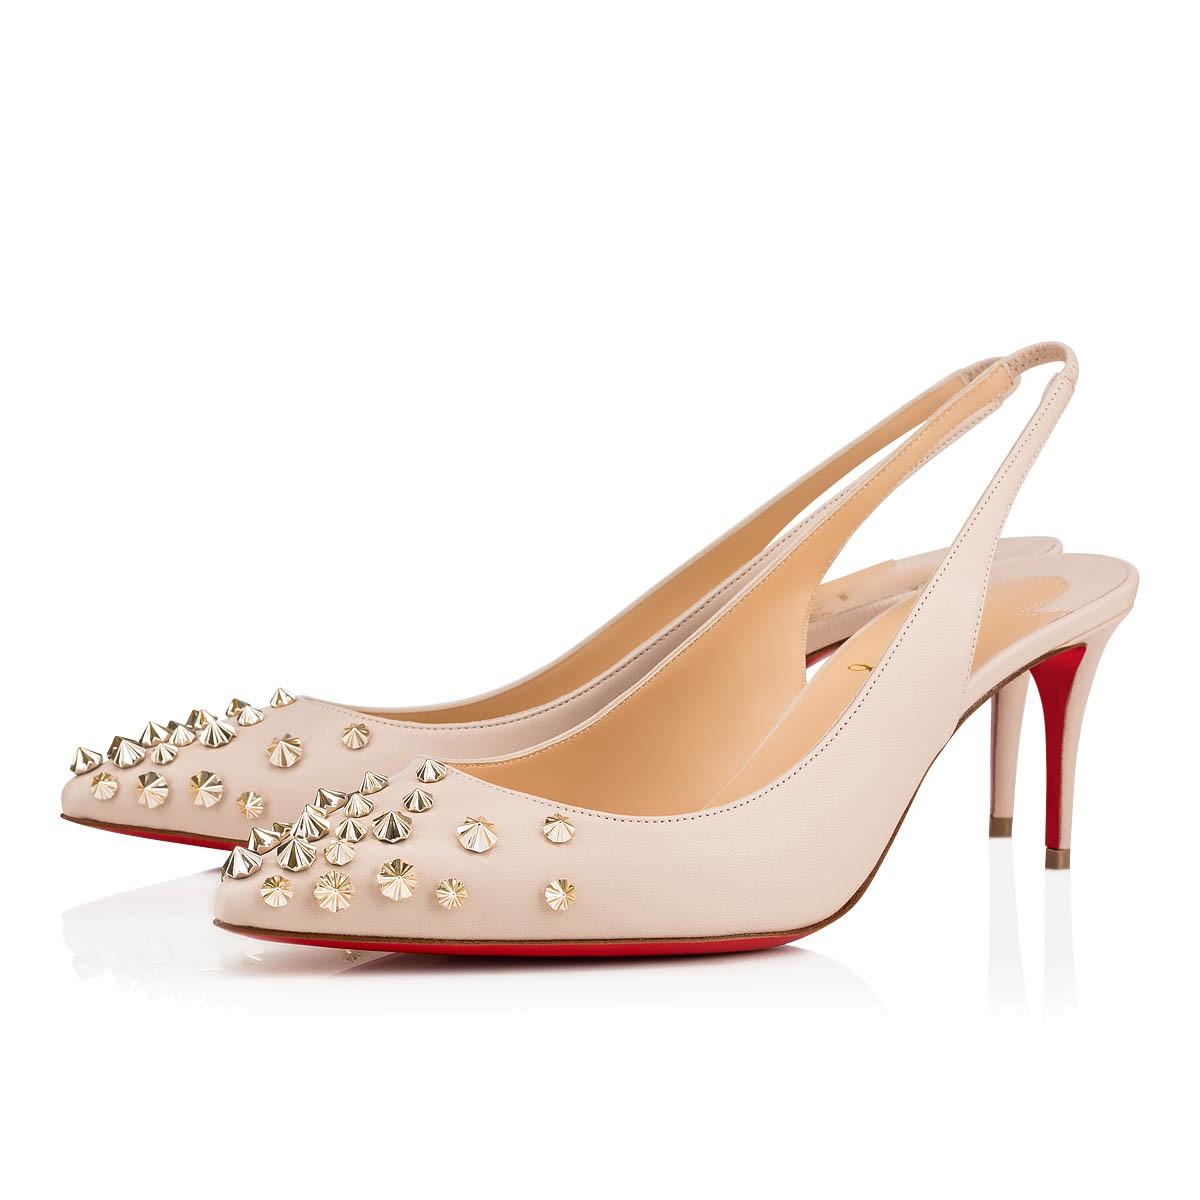 Women Shoes - Drama Sling - Christian Louboutin